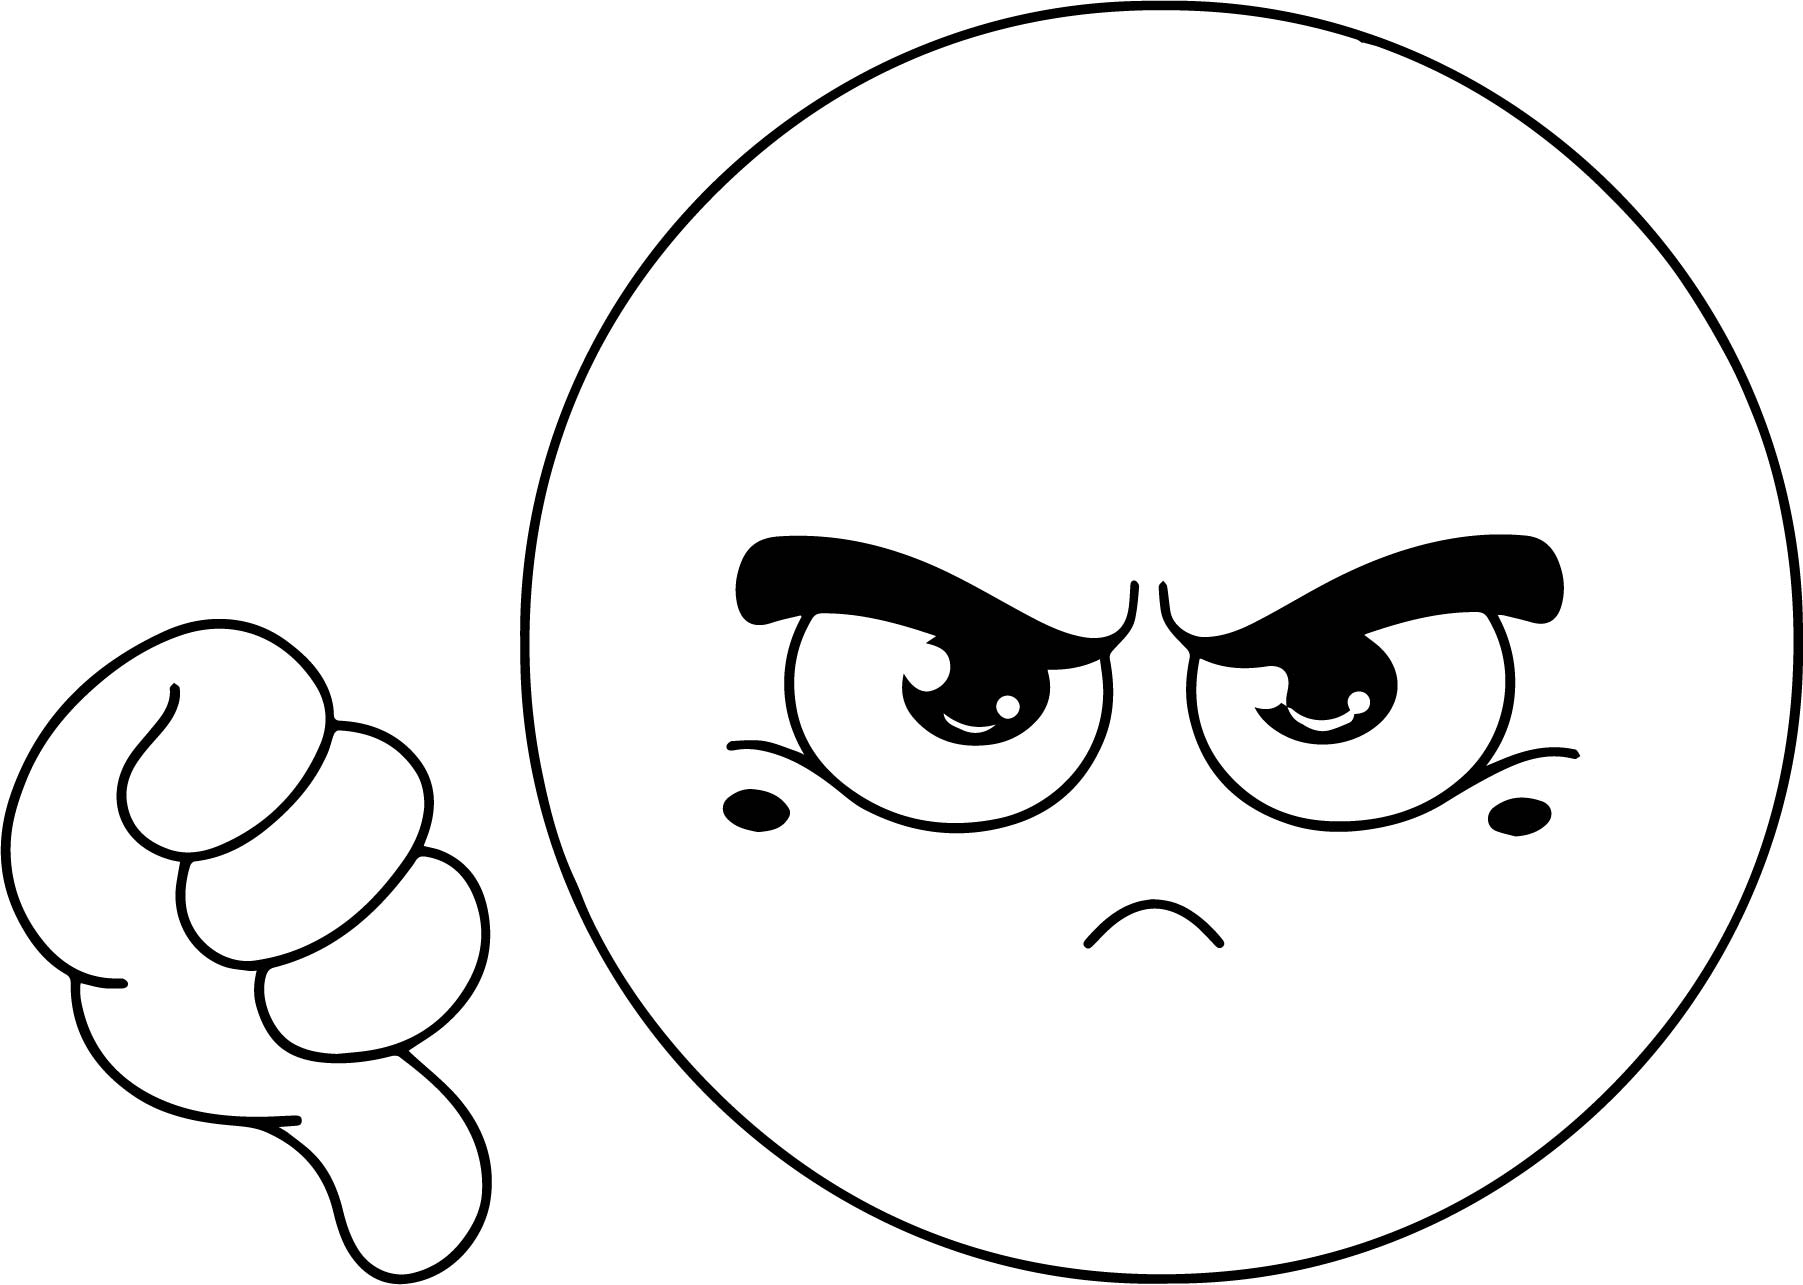 Dislike Emoticon Emology Coloring Page